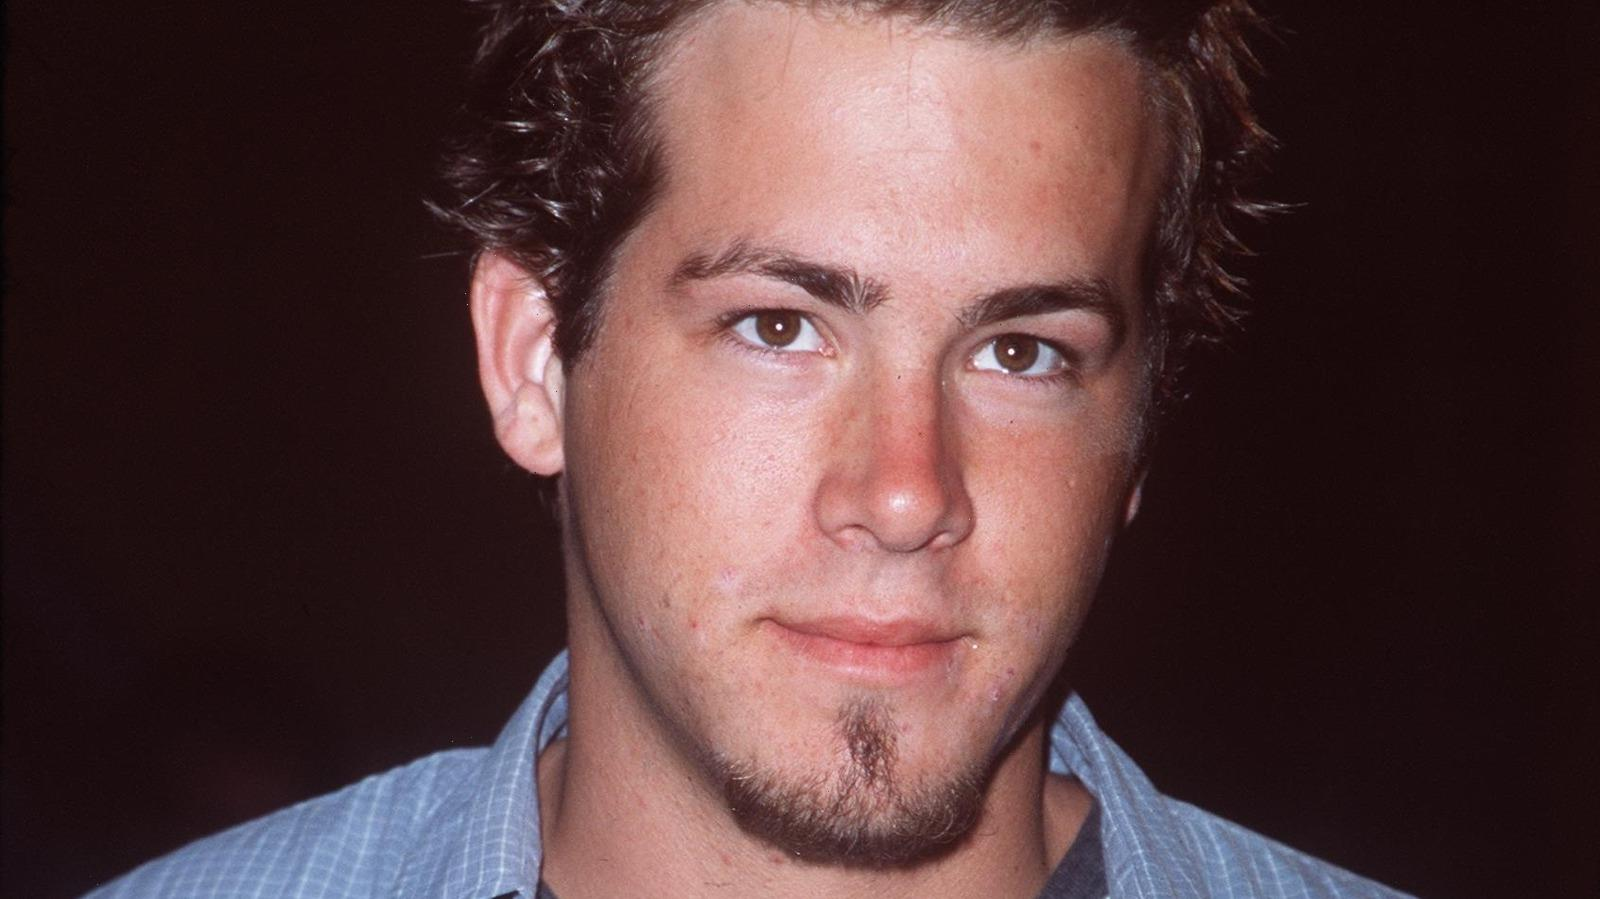 The Transformation Of Ryan Reynolds From 22 To 44 Years Old